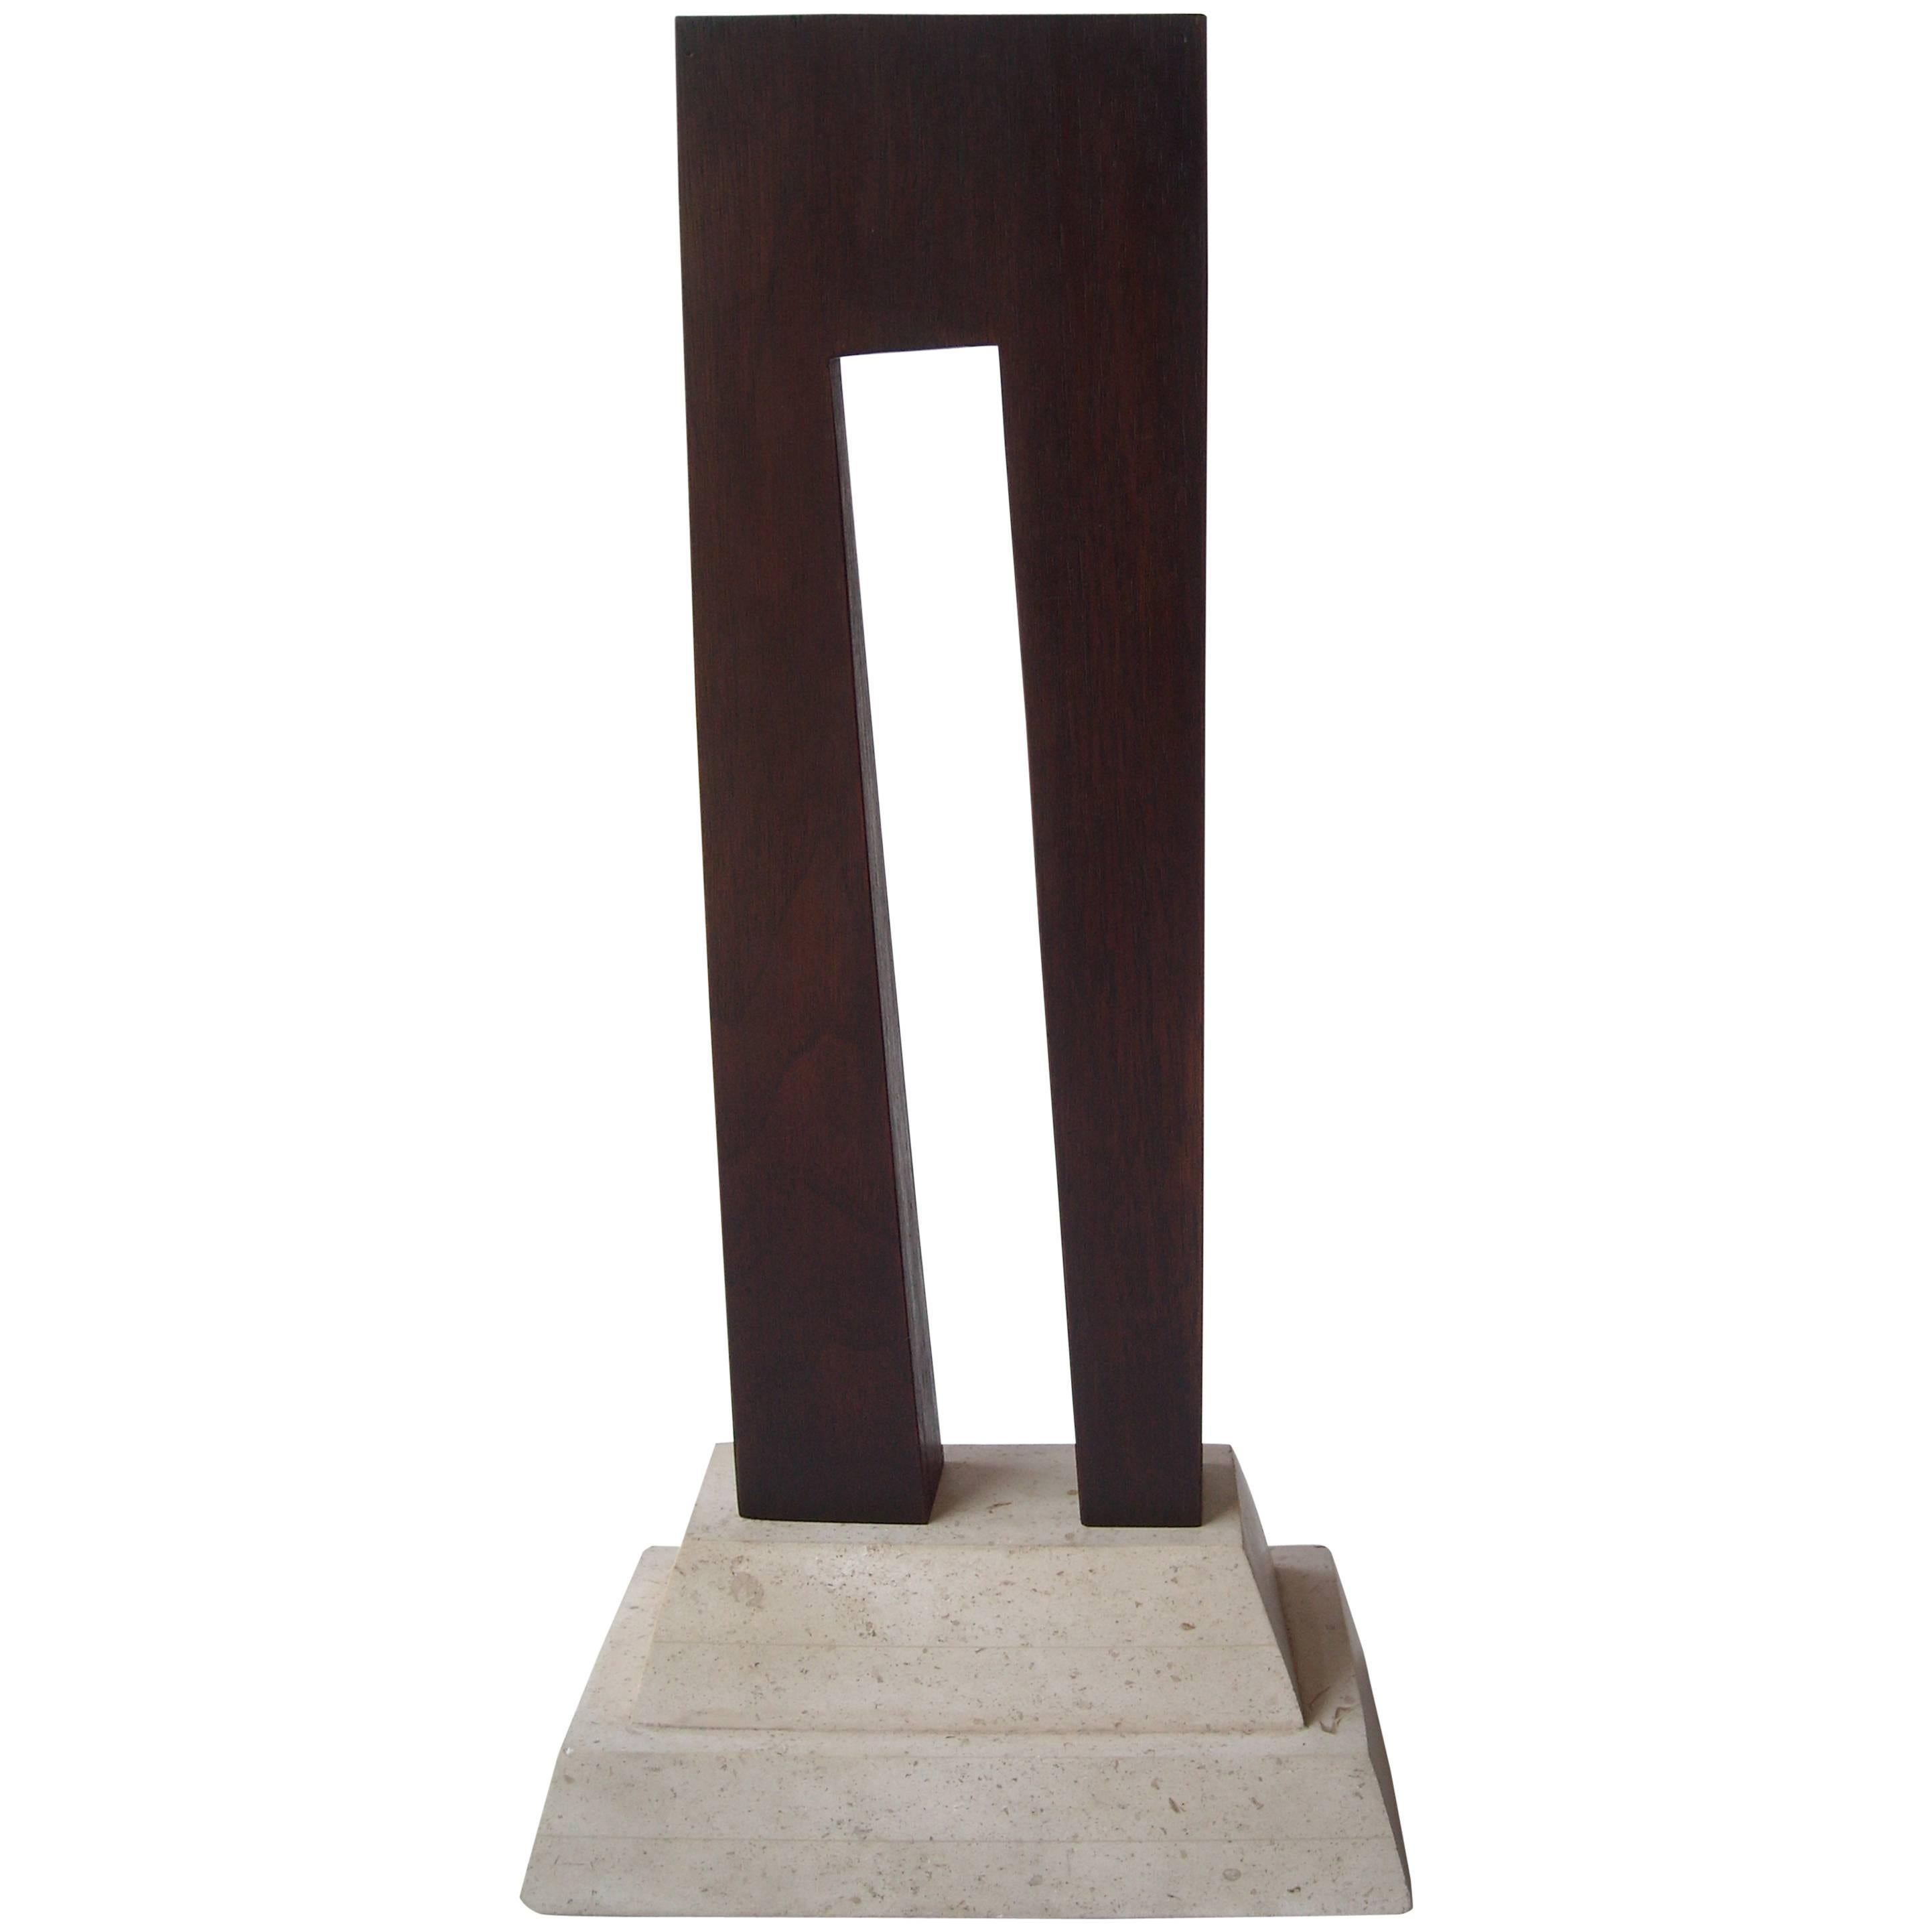 Guy Dill Wood Sculpture with Marble Base Signed and Dated